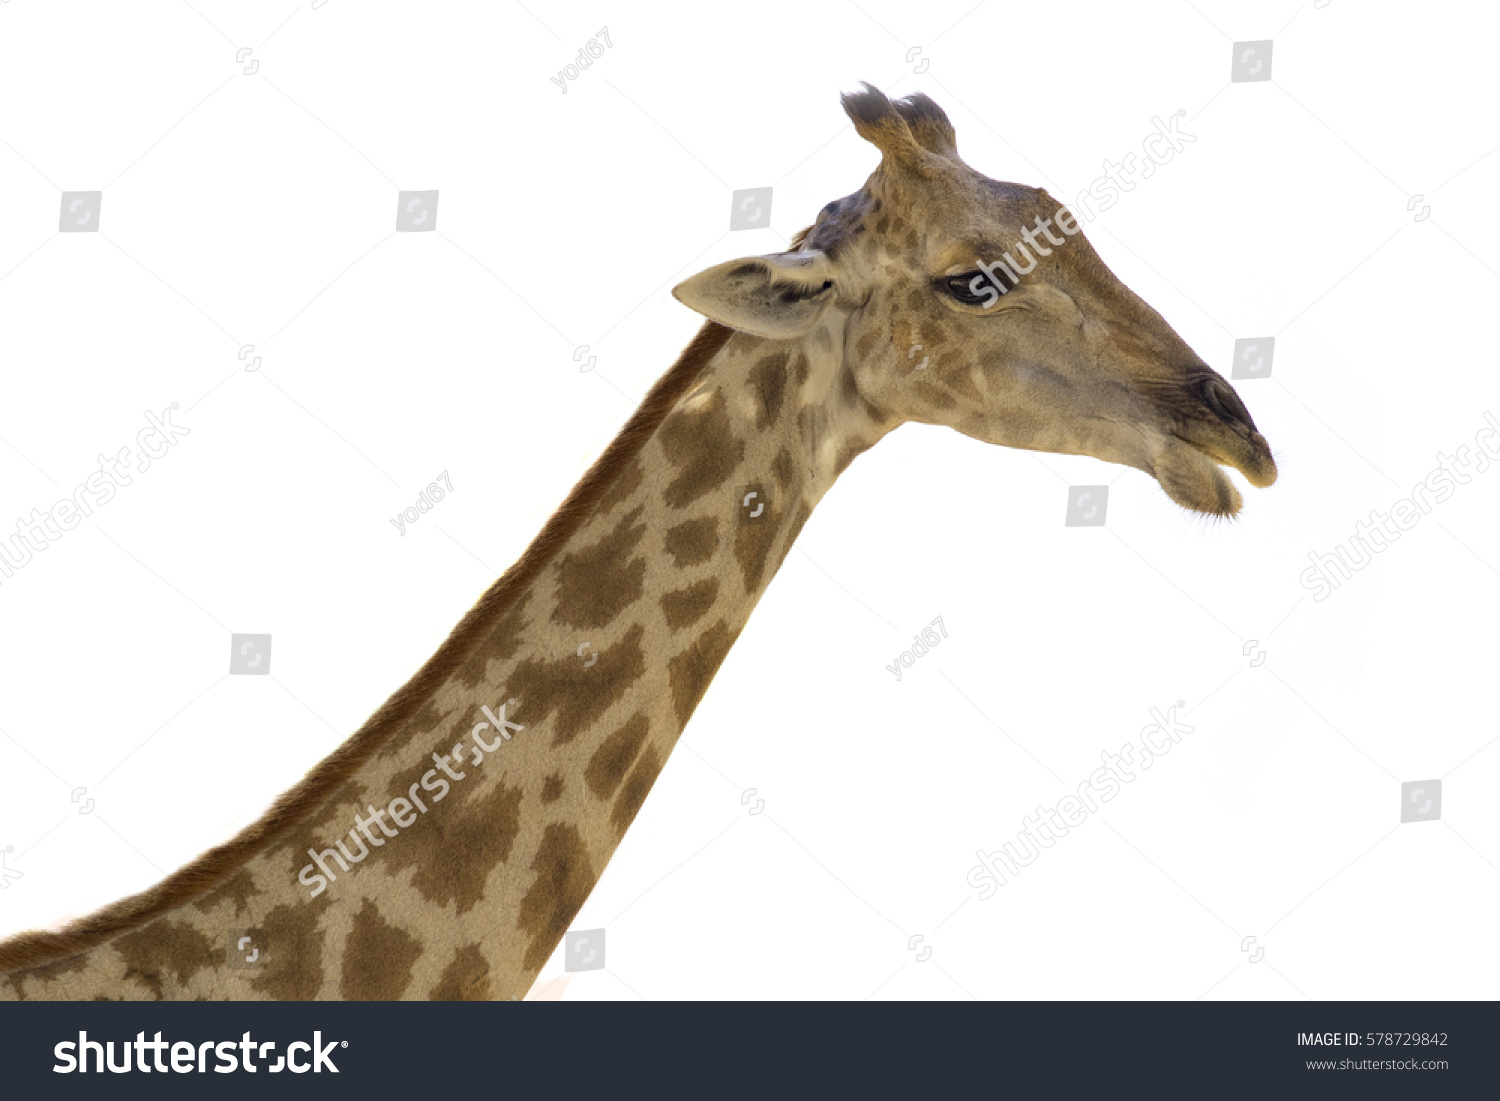 giraffe head white background - photo #40